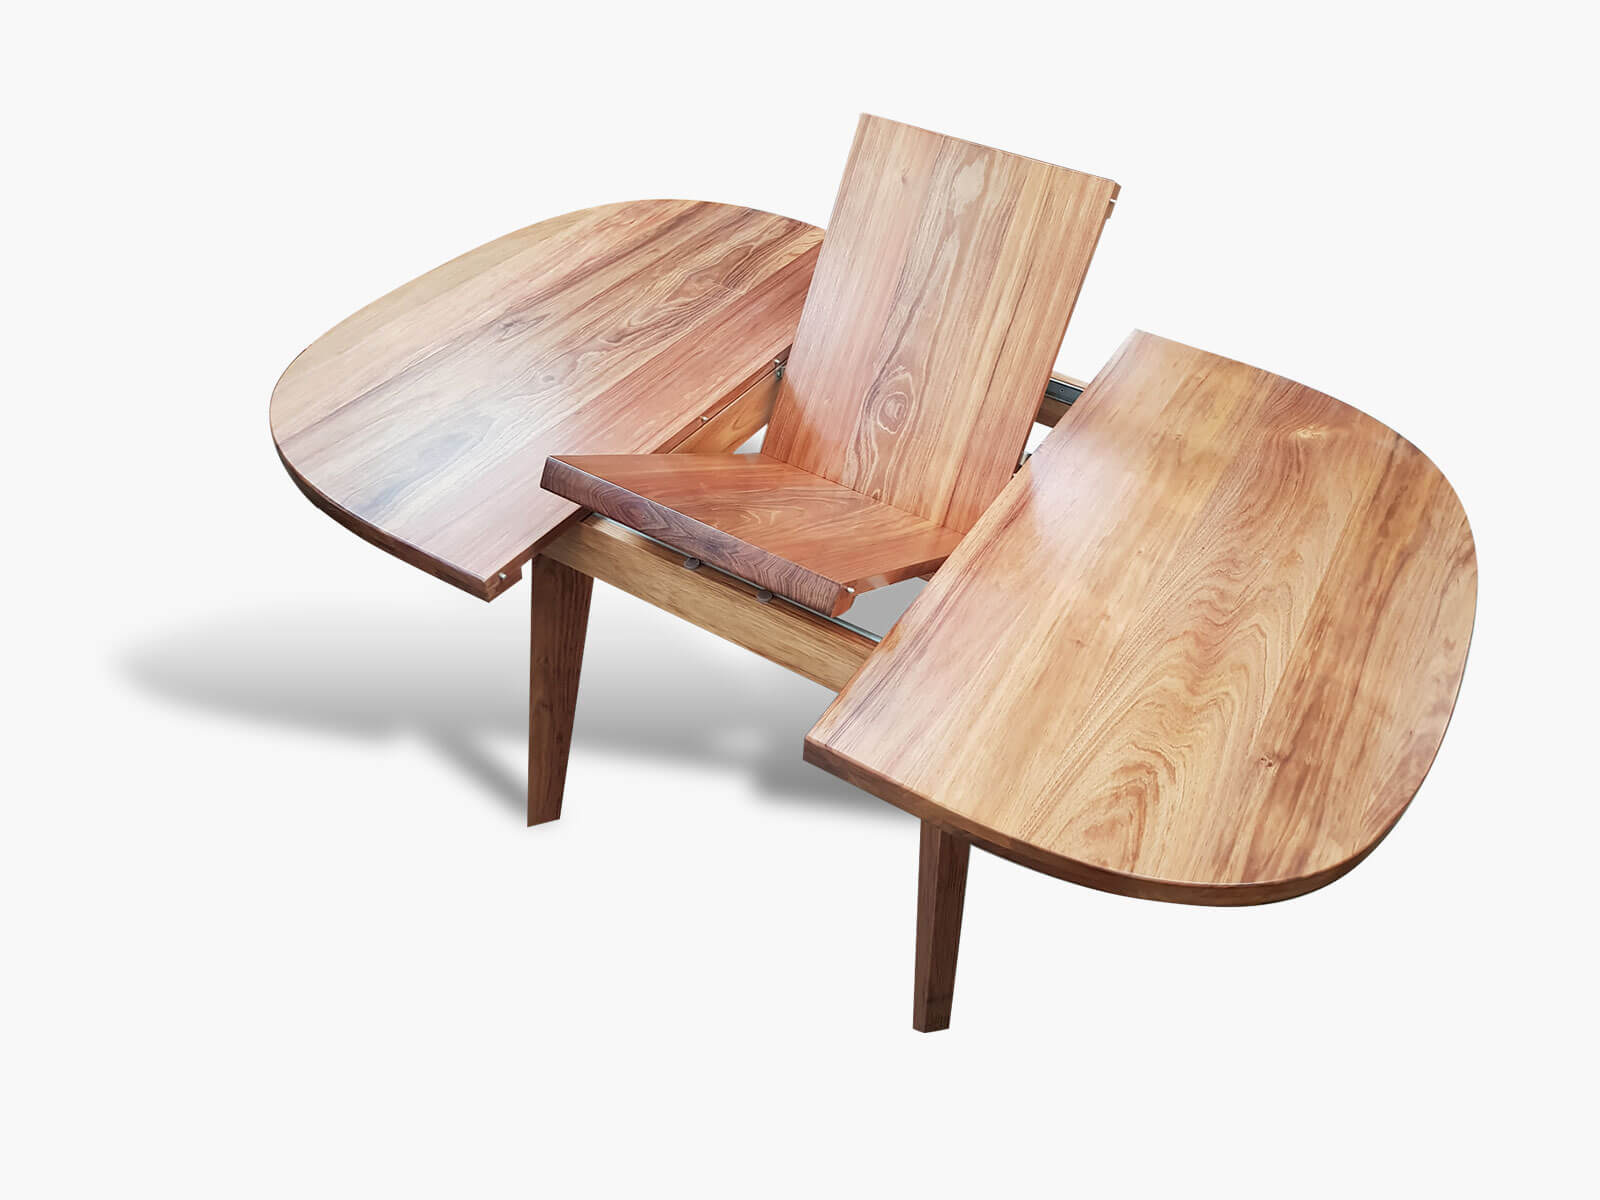 Retro-Rounded-Extension Timber Furniture